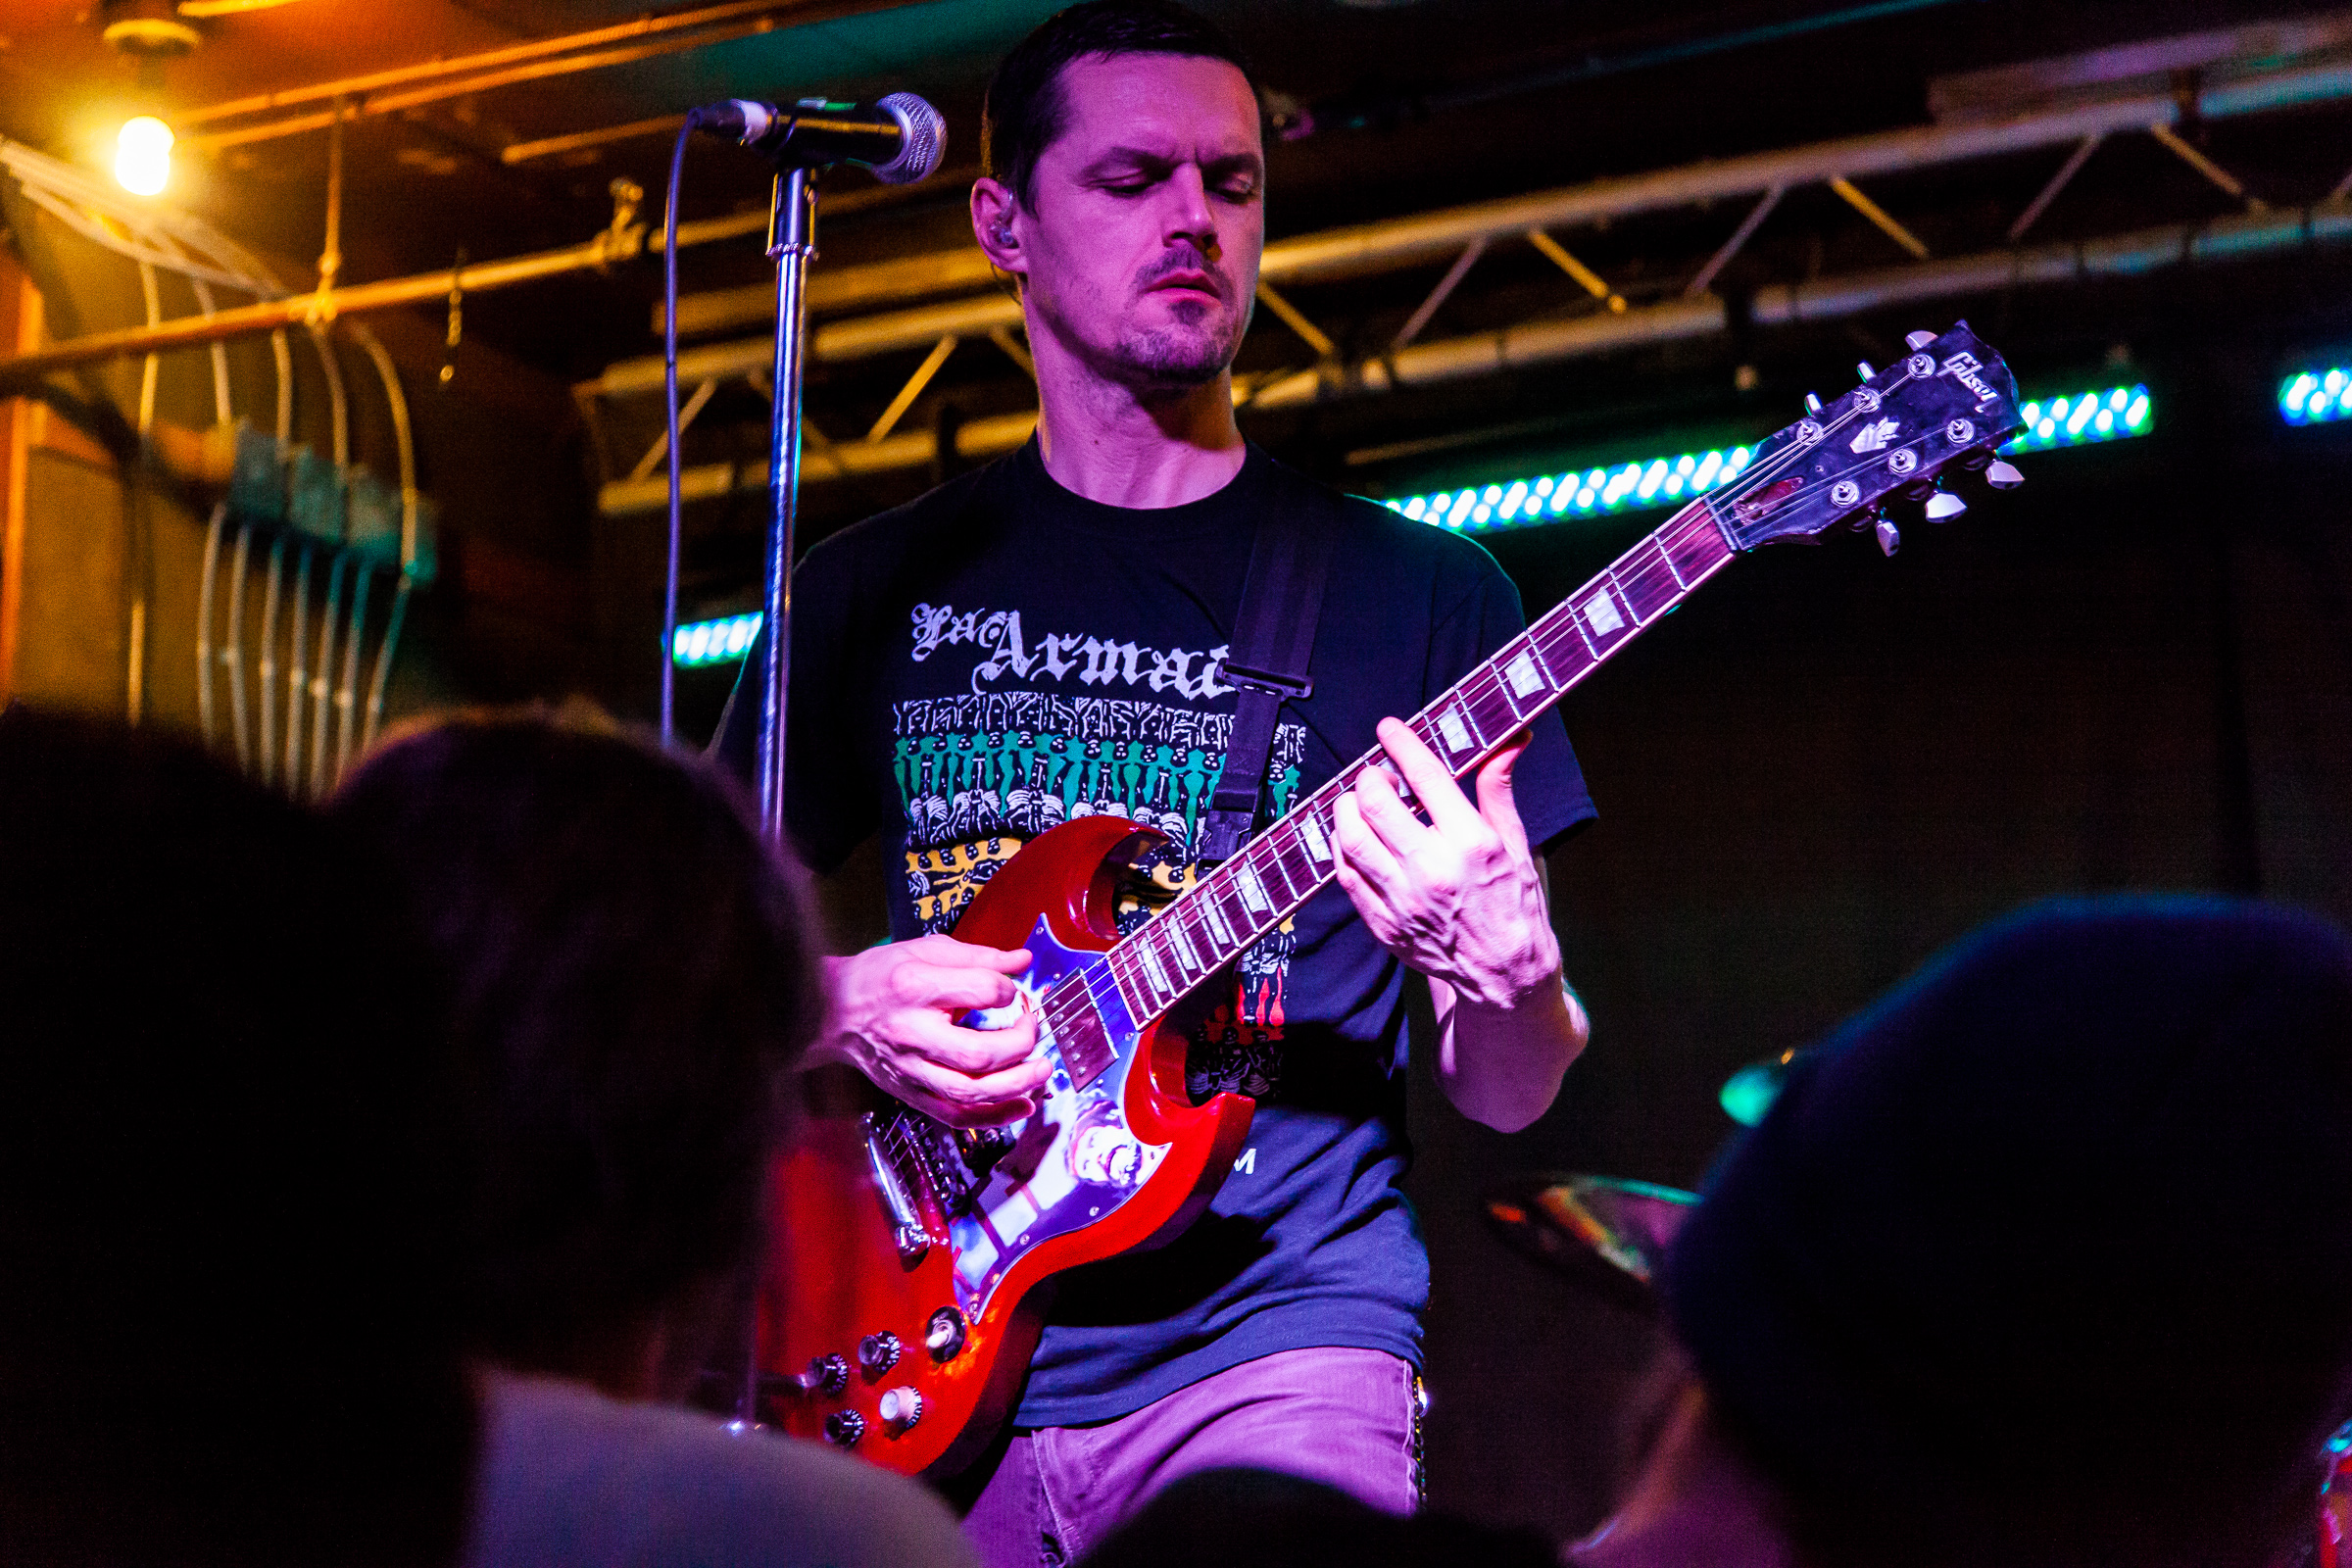 Though it was New Years Eve 2013 Propagandhi didn't grace the stage at the Windsor until just minutes after Midnight. This was one of the best evenings ever. Propagandhi, though Winnipeg locals, only ever play in their hometown once every couple years, usually in much larger venues to bigger always sold out crowds. The New Years Eve show was announced with practically no notice and tickets sold out within minutes. I stood in line on a cold December morning in the Exchange waiting for Into the Music to open their doors and pick up the hottest ticket in town. But like many others I was left in the cold, ticketless and irritable. But thanks to the kindness of friends Melissa and I, along with many of those faces behind me in line, got to ring in the New Year with some of the raddest dudes around.